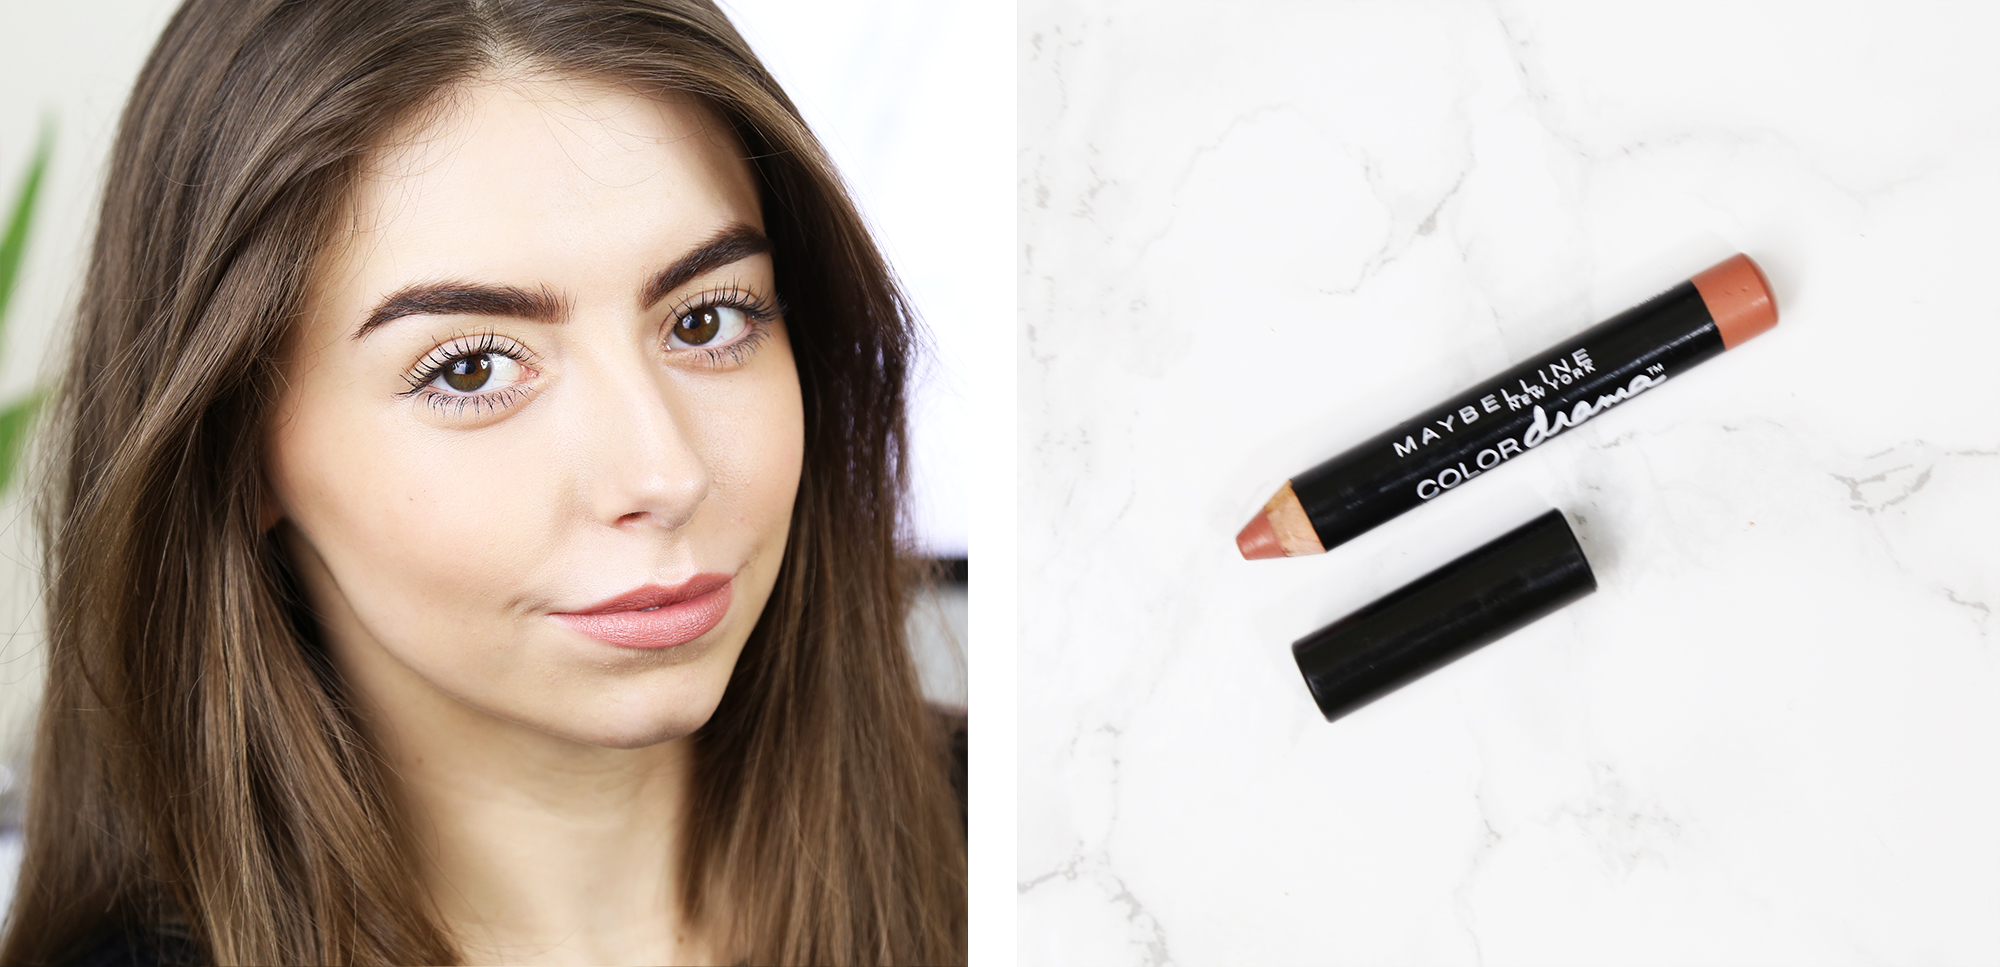 Cocochic+Kylie+Jenner+Nude+Lipstick+Swatches+Maybelline+Nude+Perfection